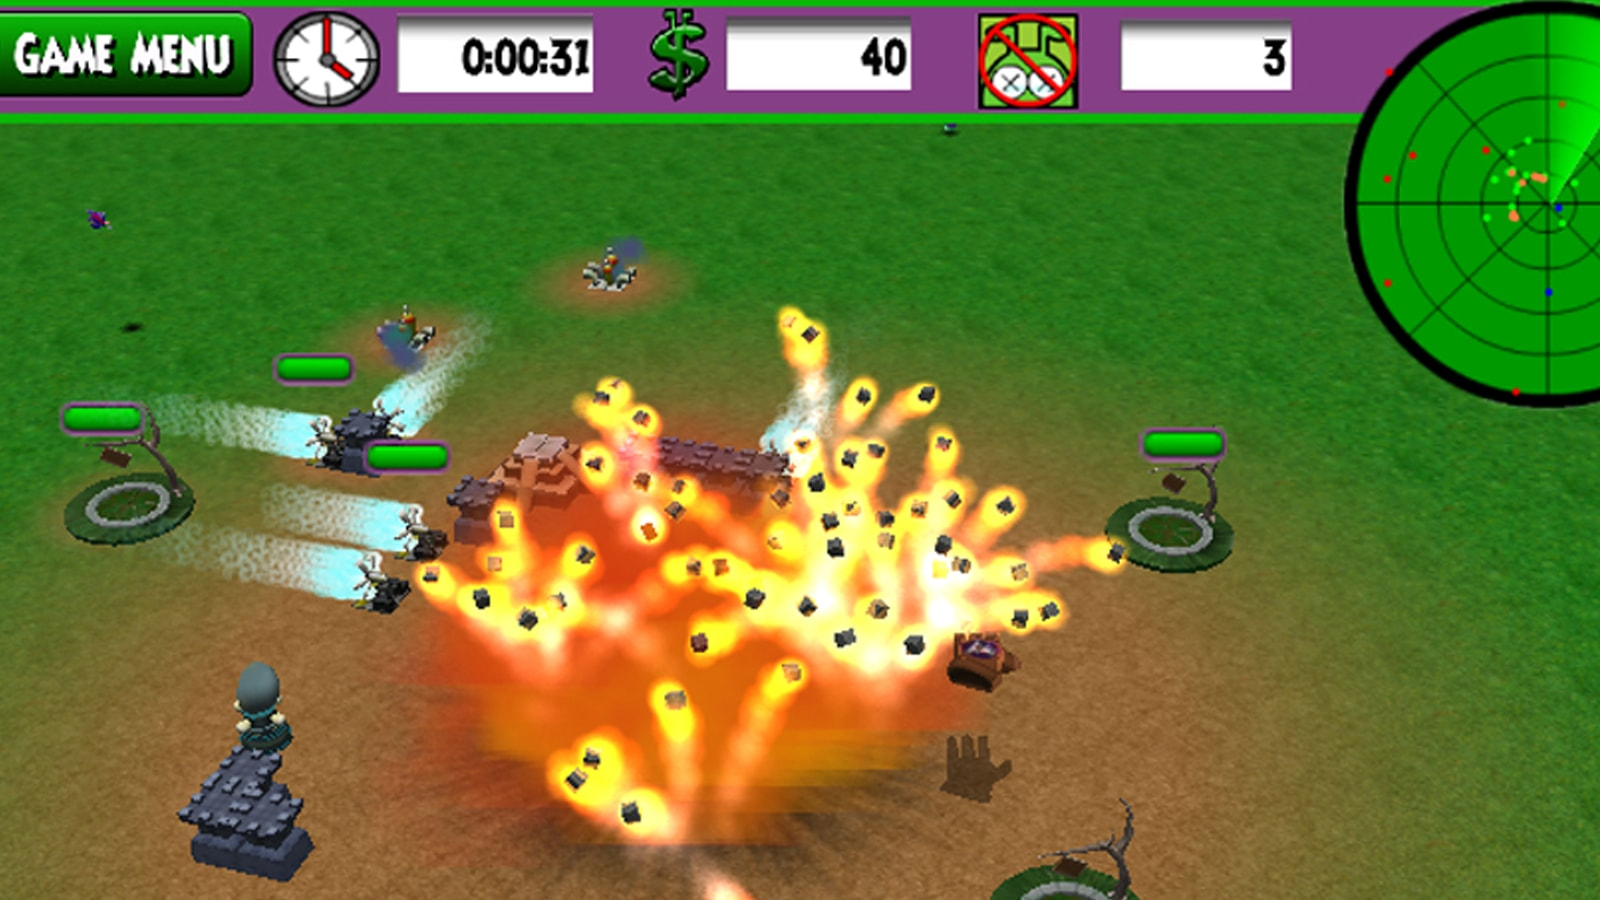 An explosion erupts in the middle of the green battlefield.